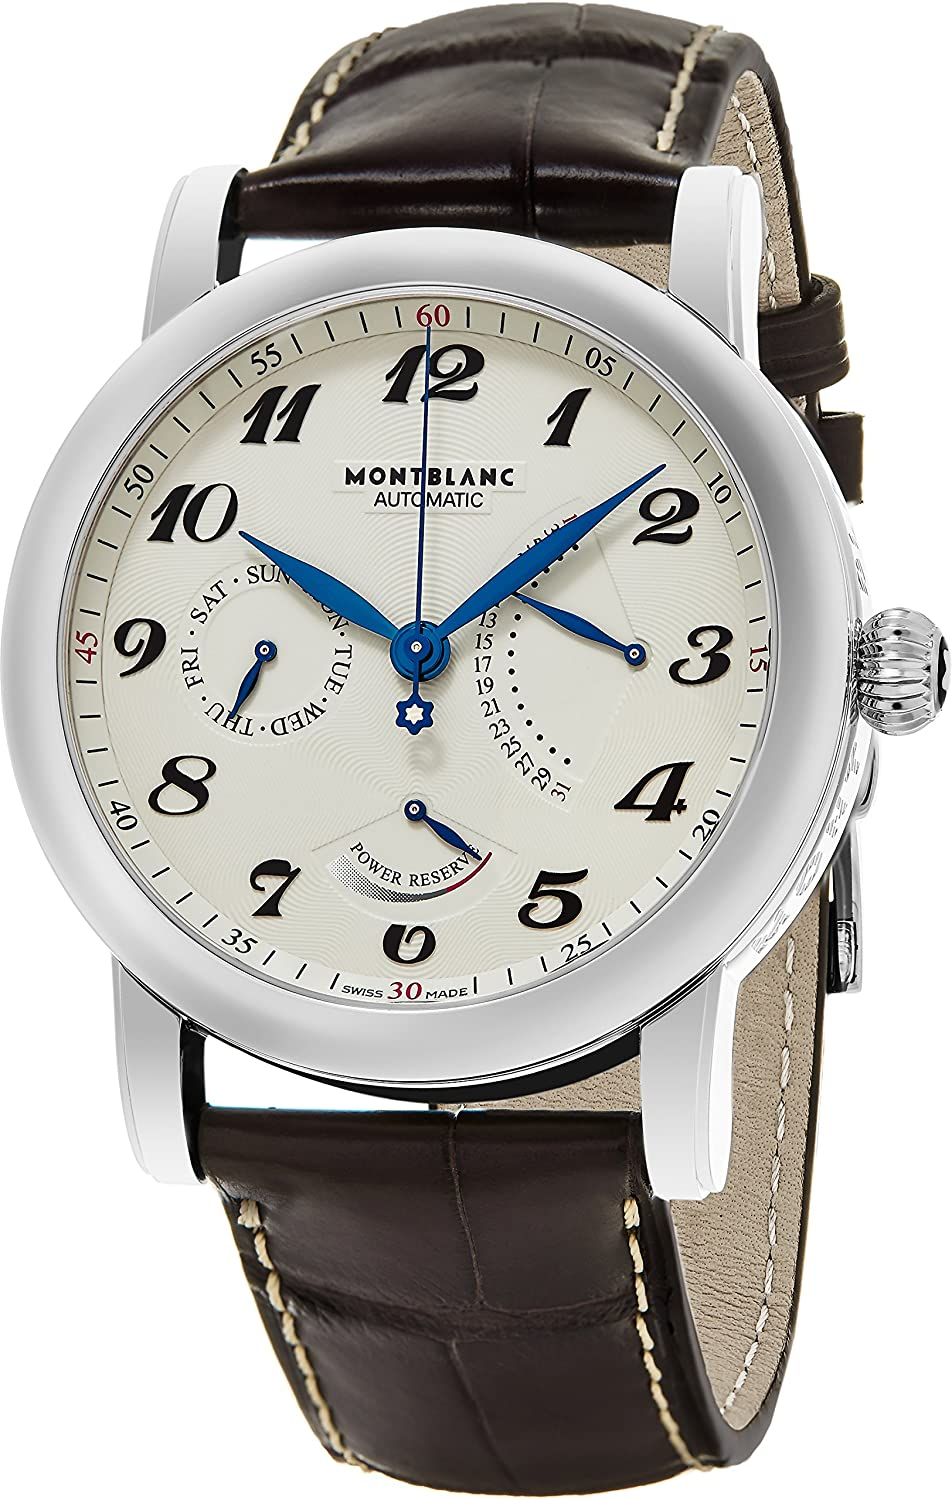 Montblanc Men s Star Stainless Steel Swiss-Automatic Watch with Leather Strap, Brown, 22 Model 106462